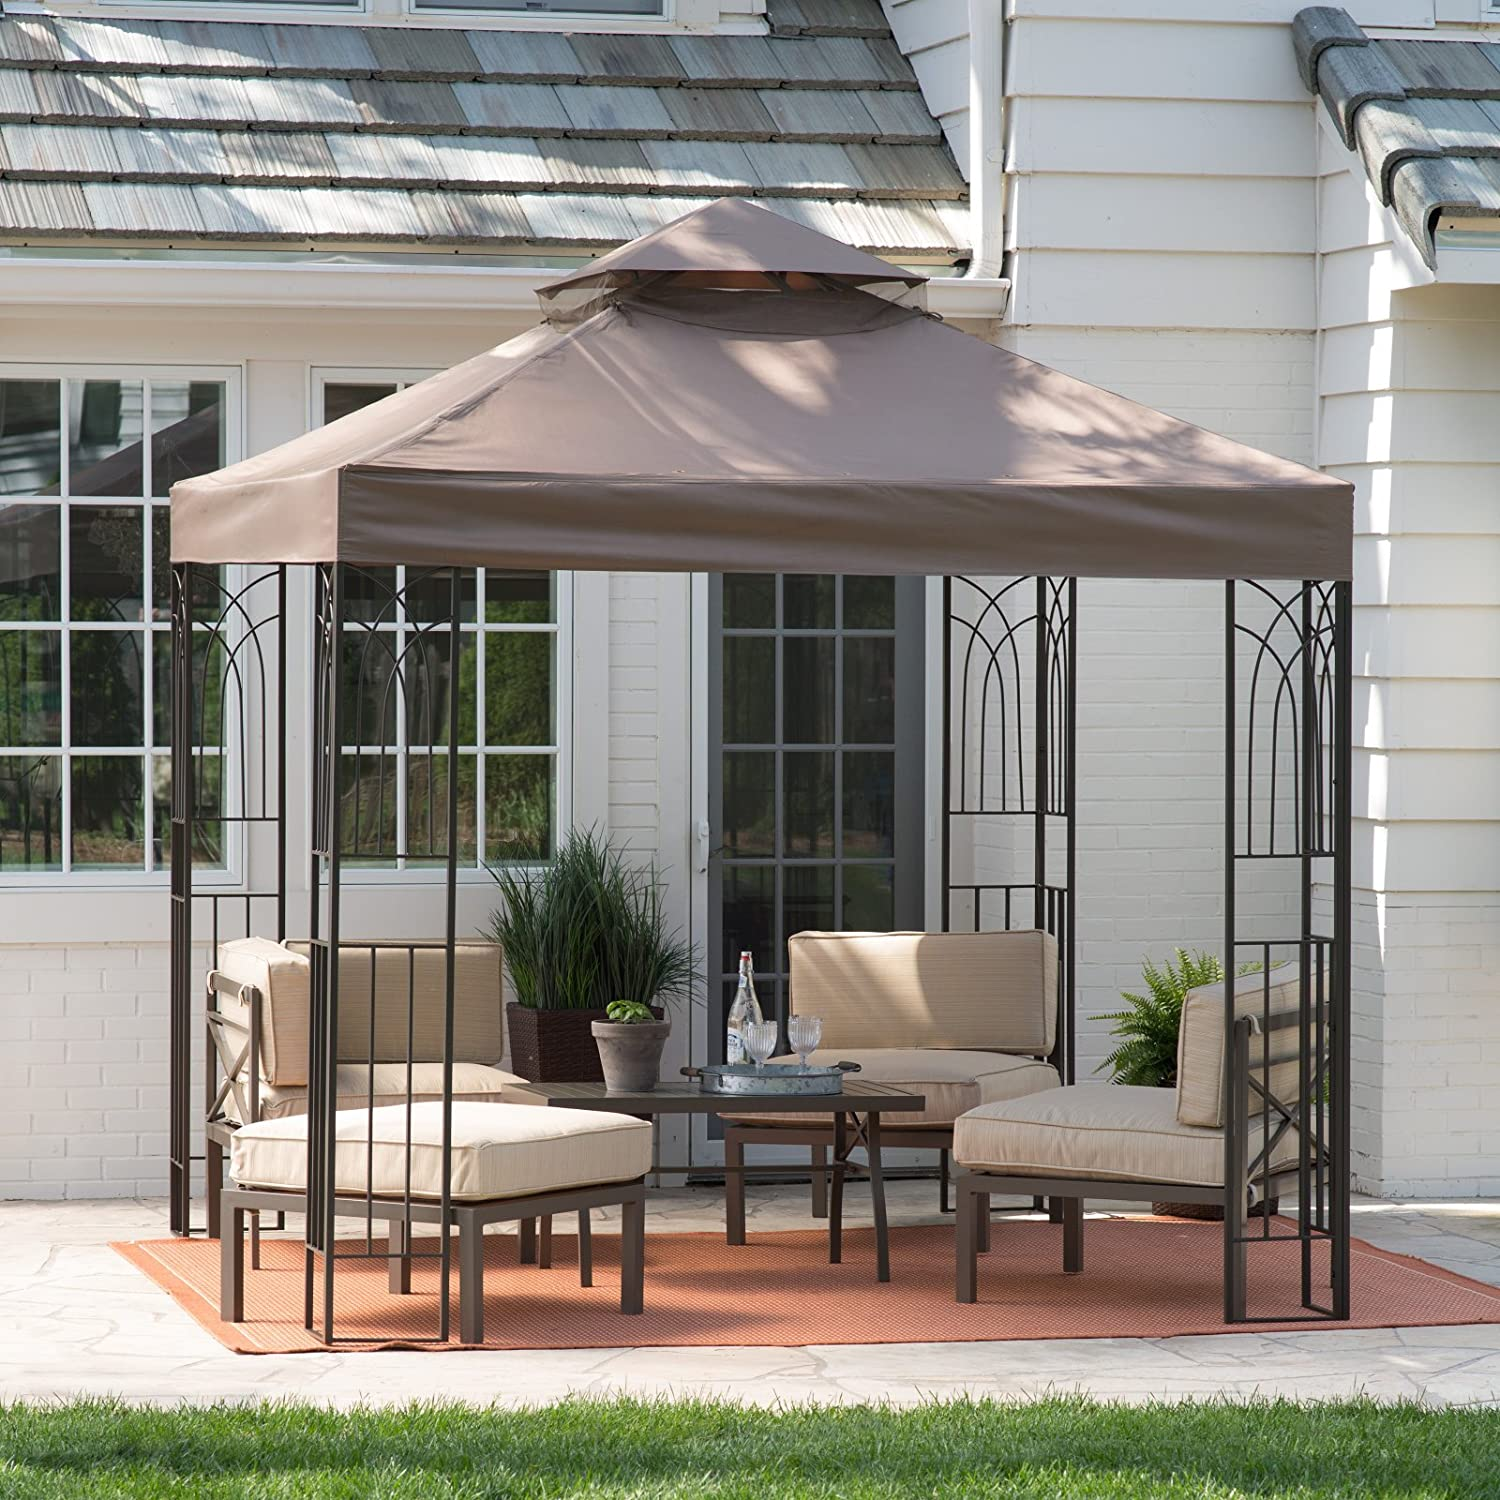 Amazon Coral Coast Prairie Grass 8 x 8 ft Gazebo Canopy